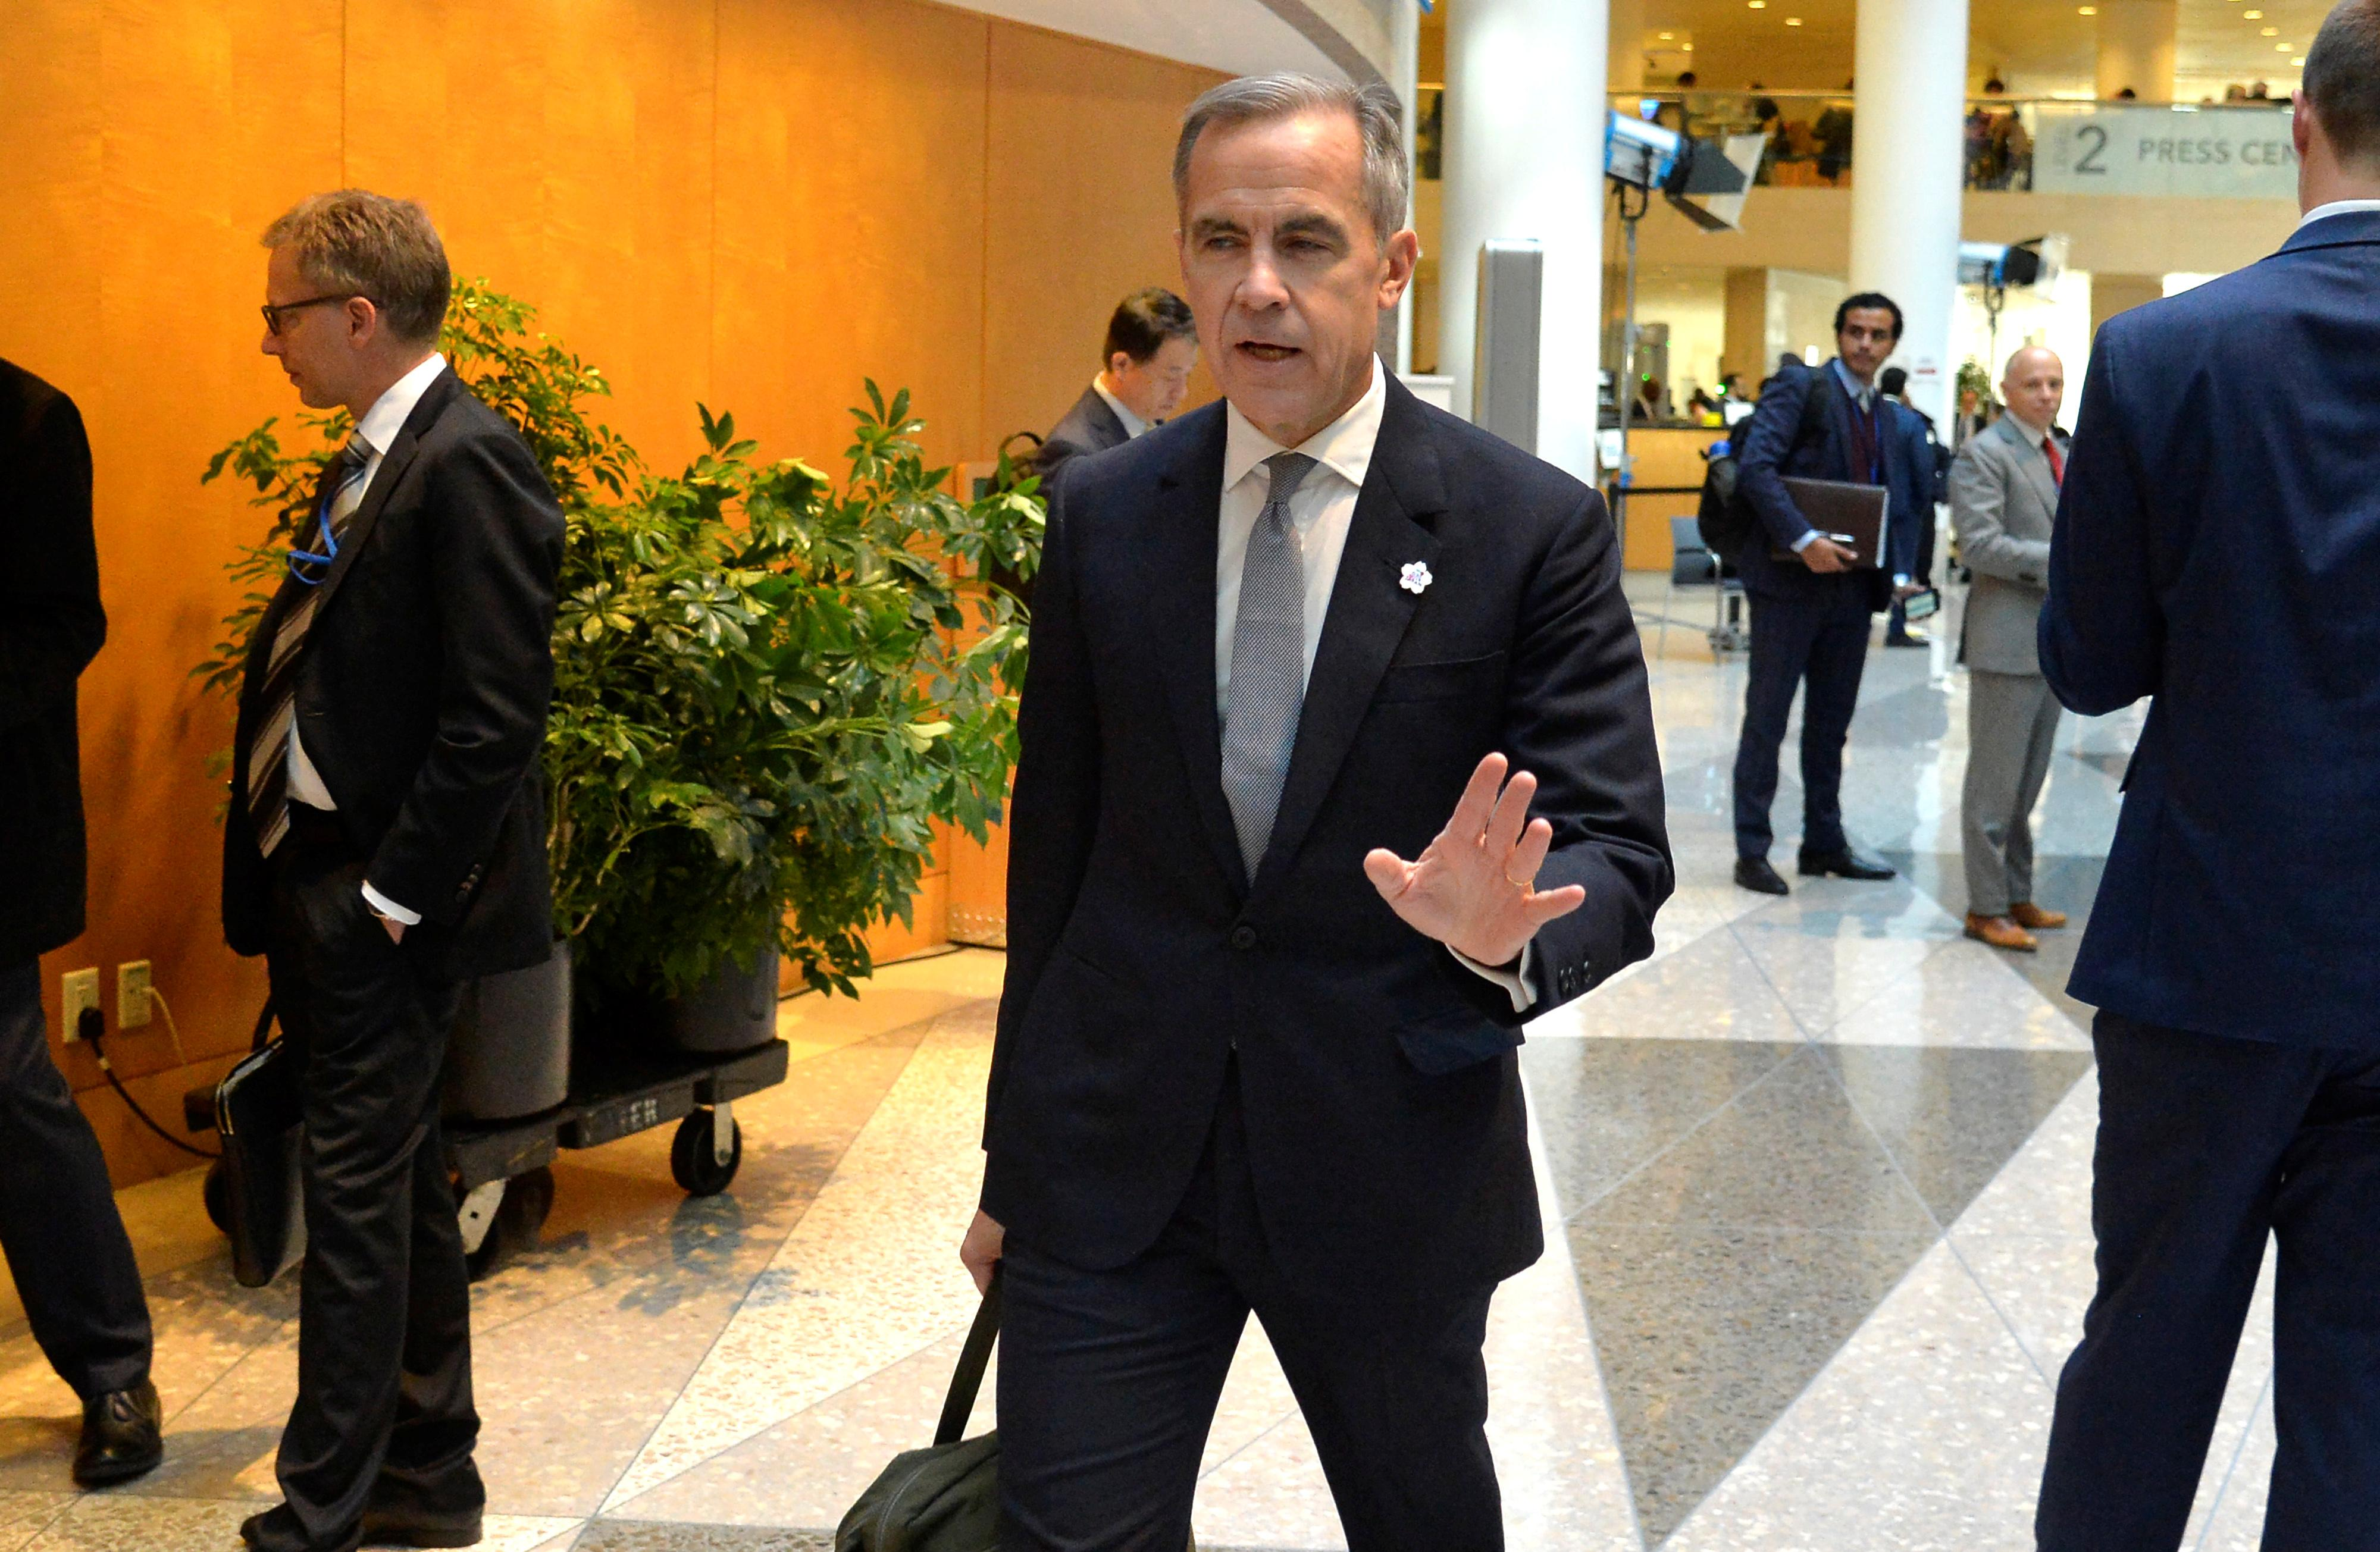 Brexit deal 'good news' but global growth key for BoE rates too -...